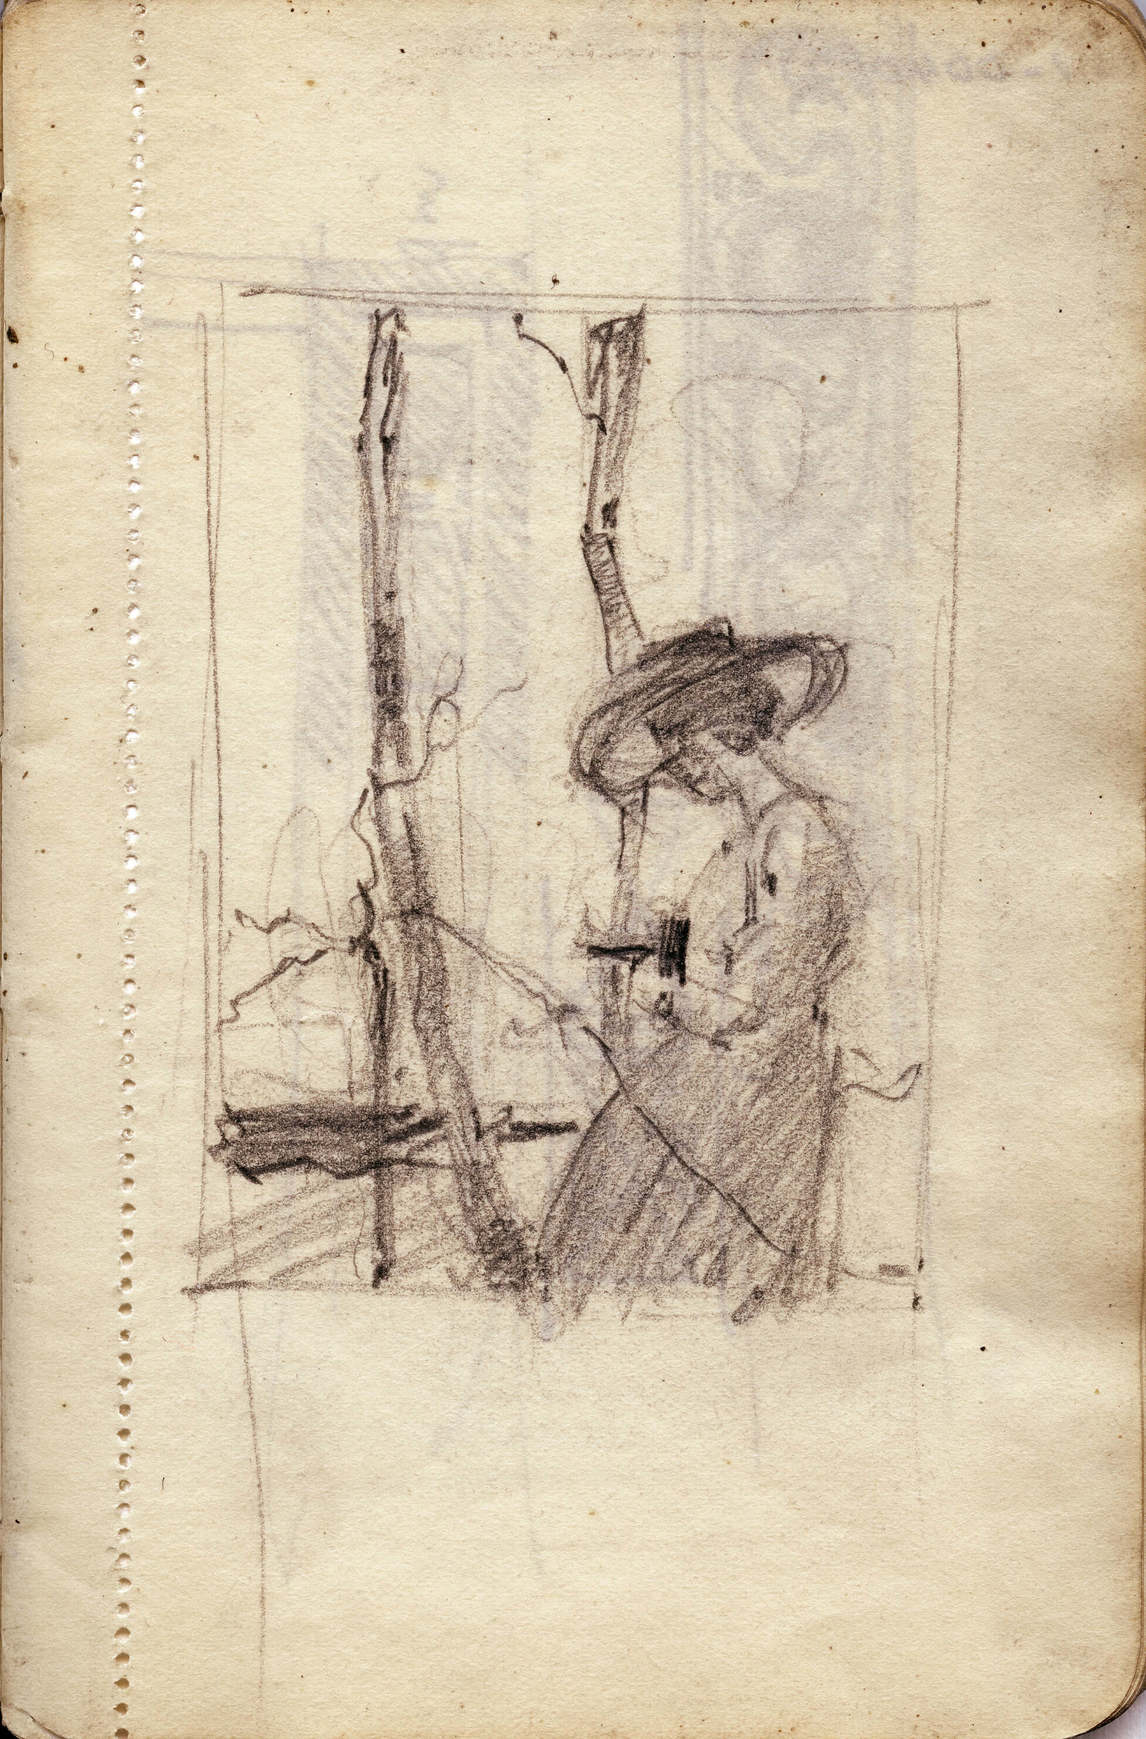 Art Canada Institute, Lionel LeMoine Fitzgerald, Sketchbook study for Woman with Camera Outdoors, c. 1917